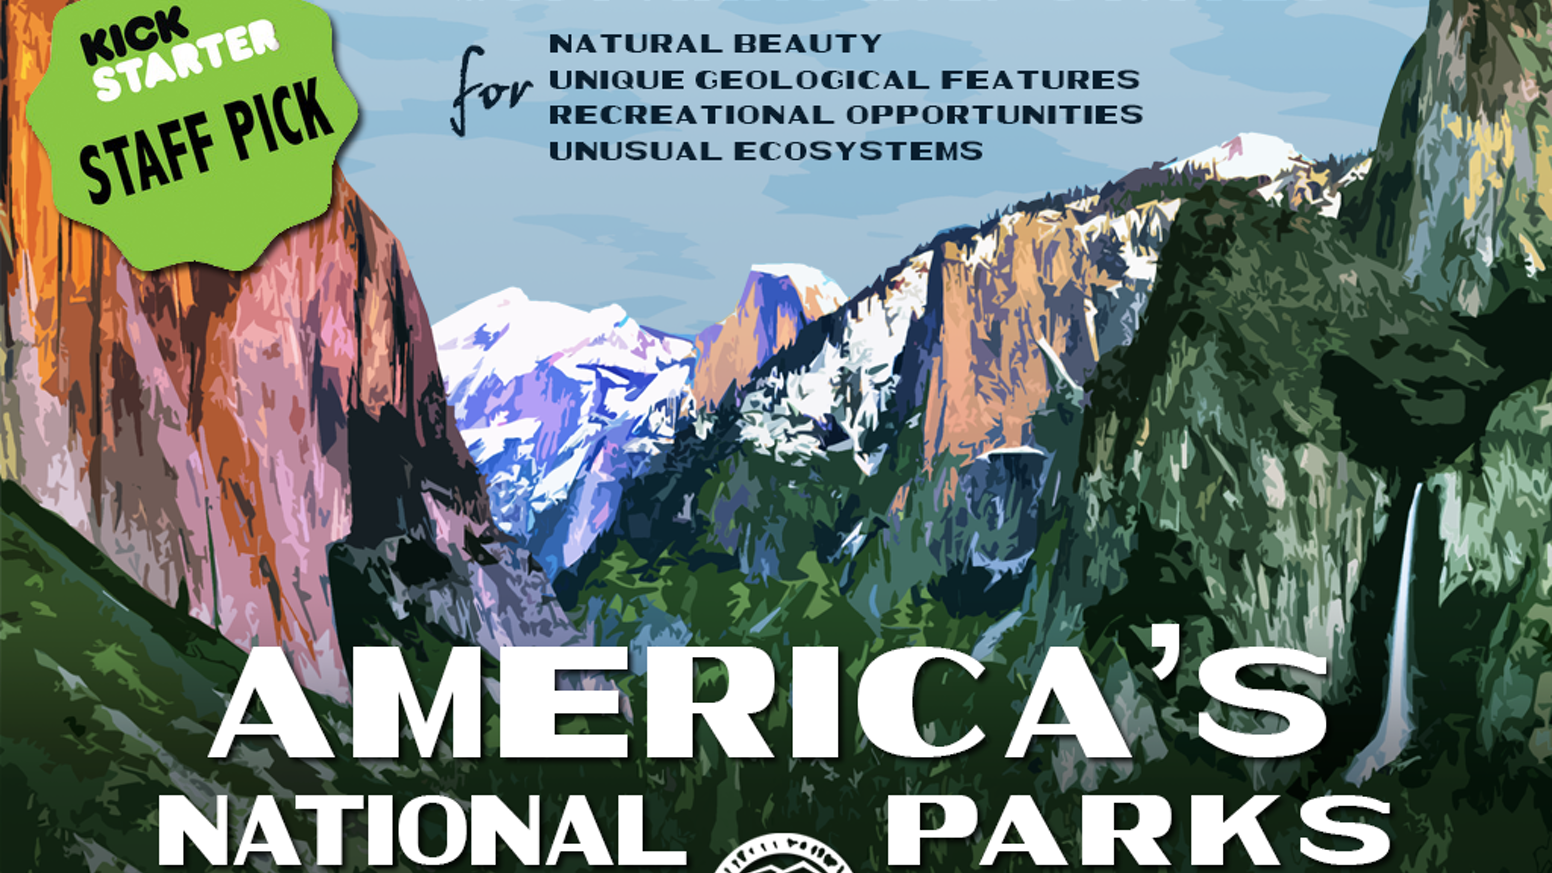 An exclusive Graphic Art Collection of America's National Parks...35 years in the making.